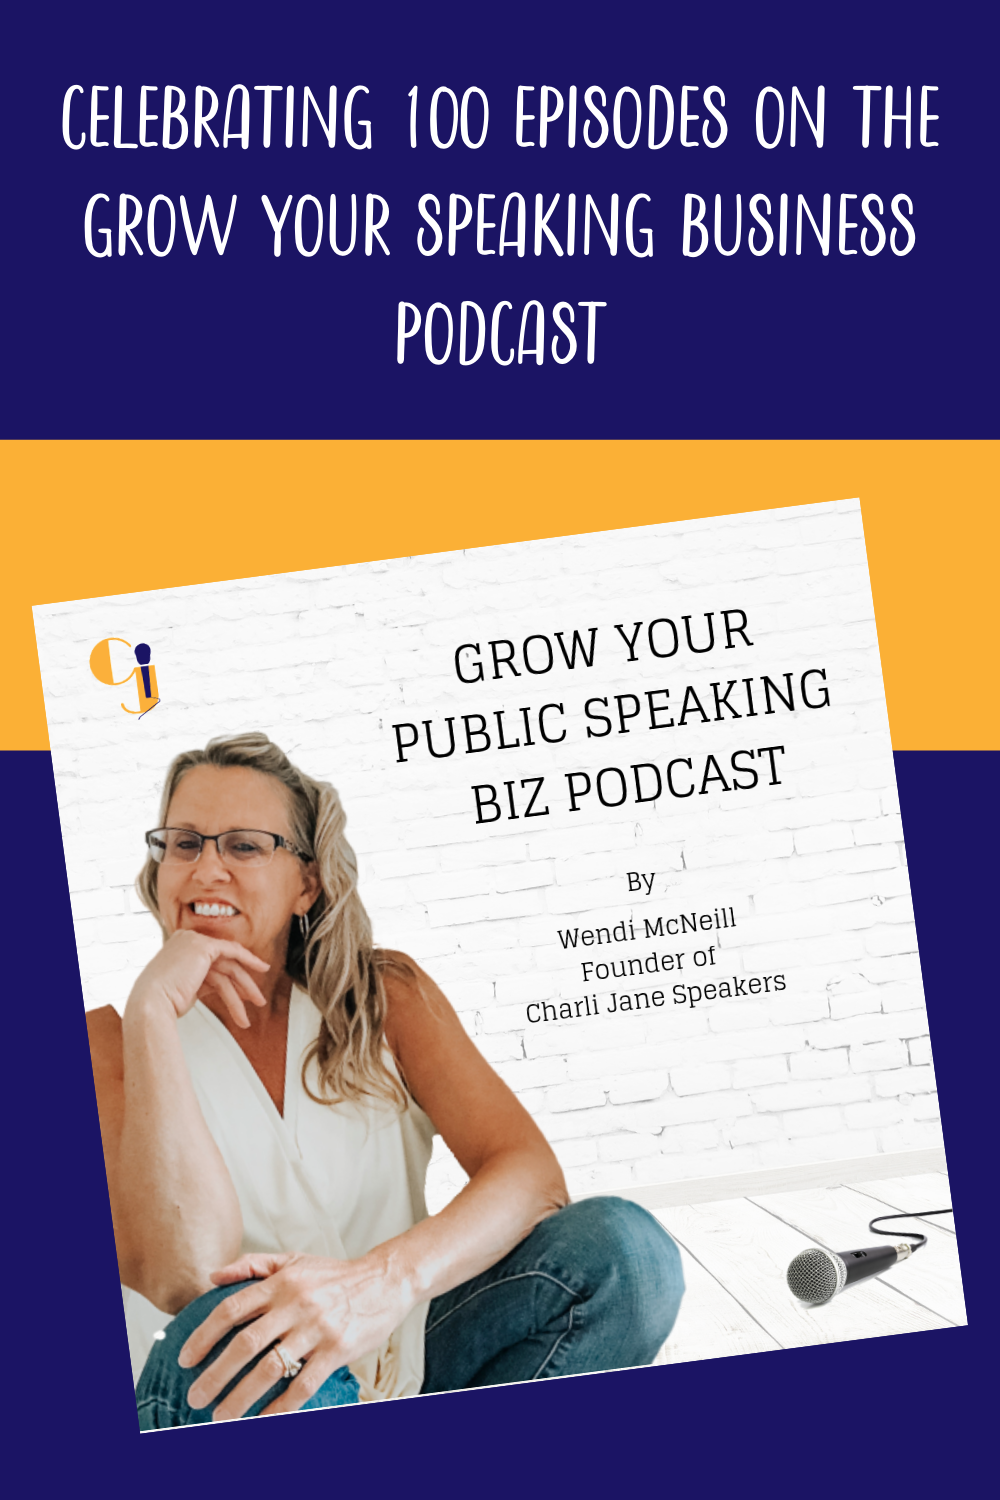 Grow your public speaking business